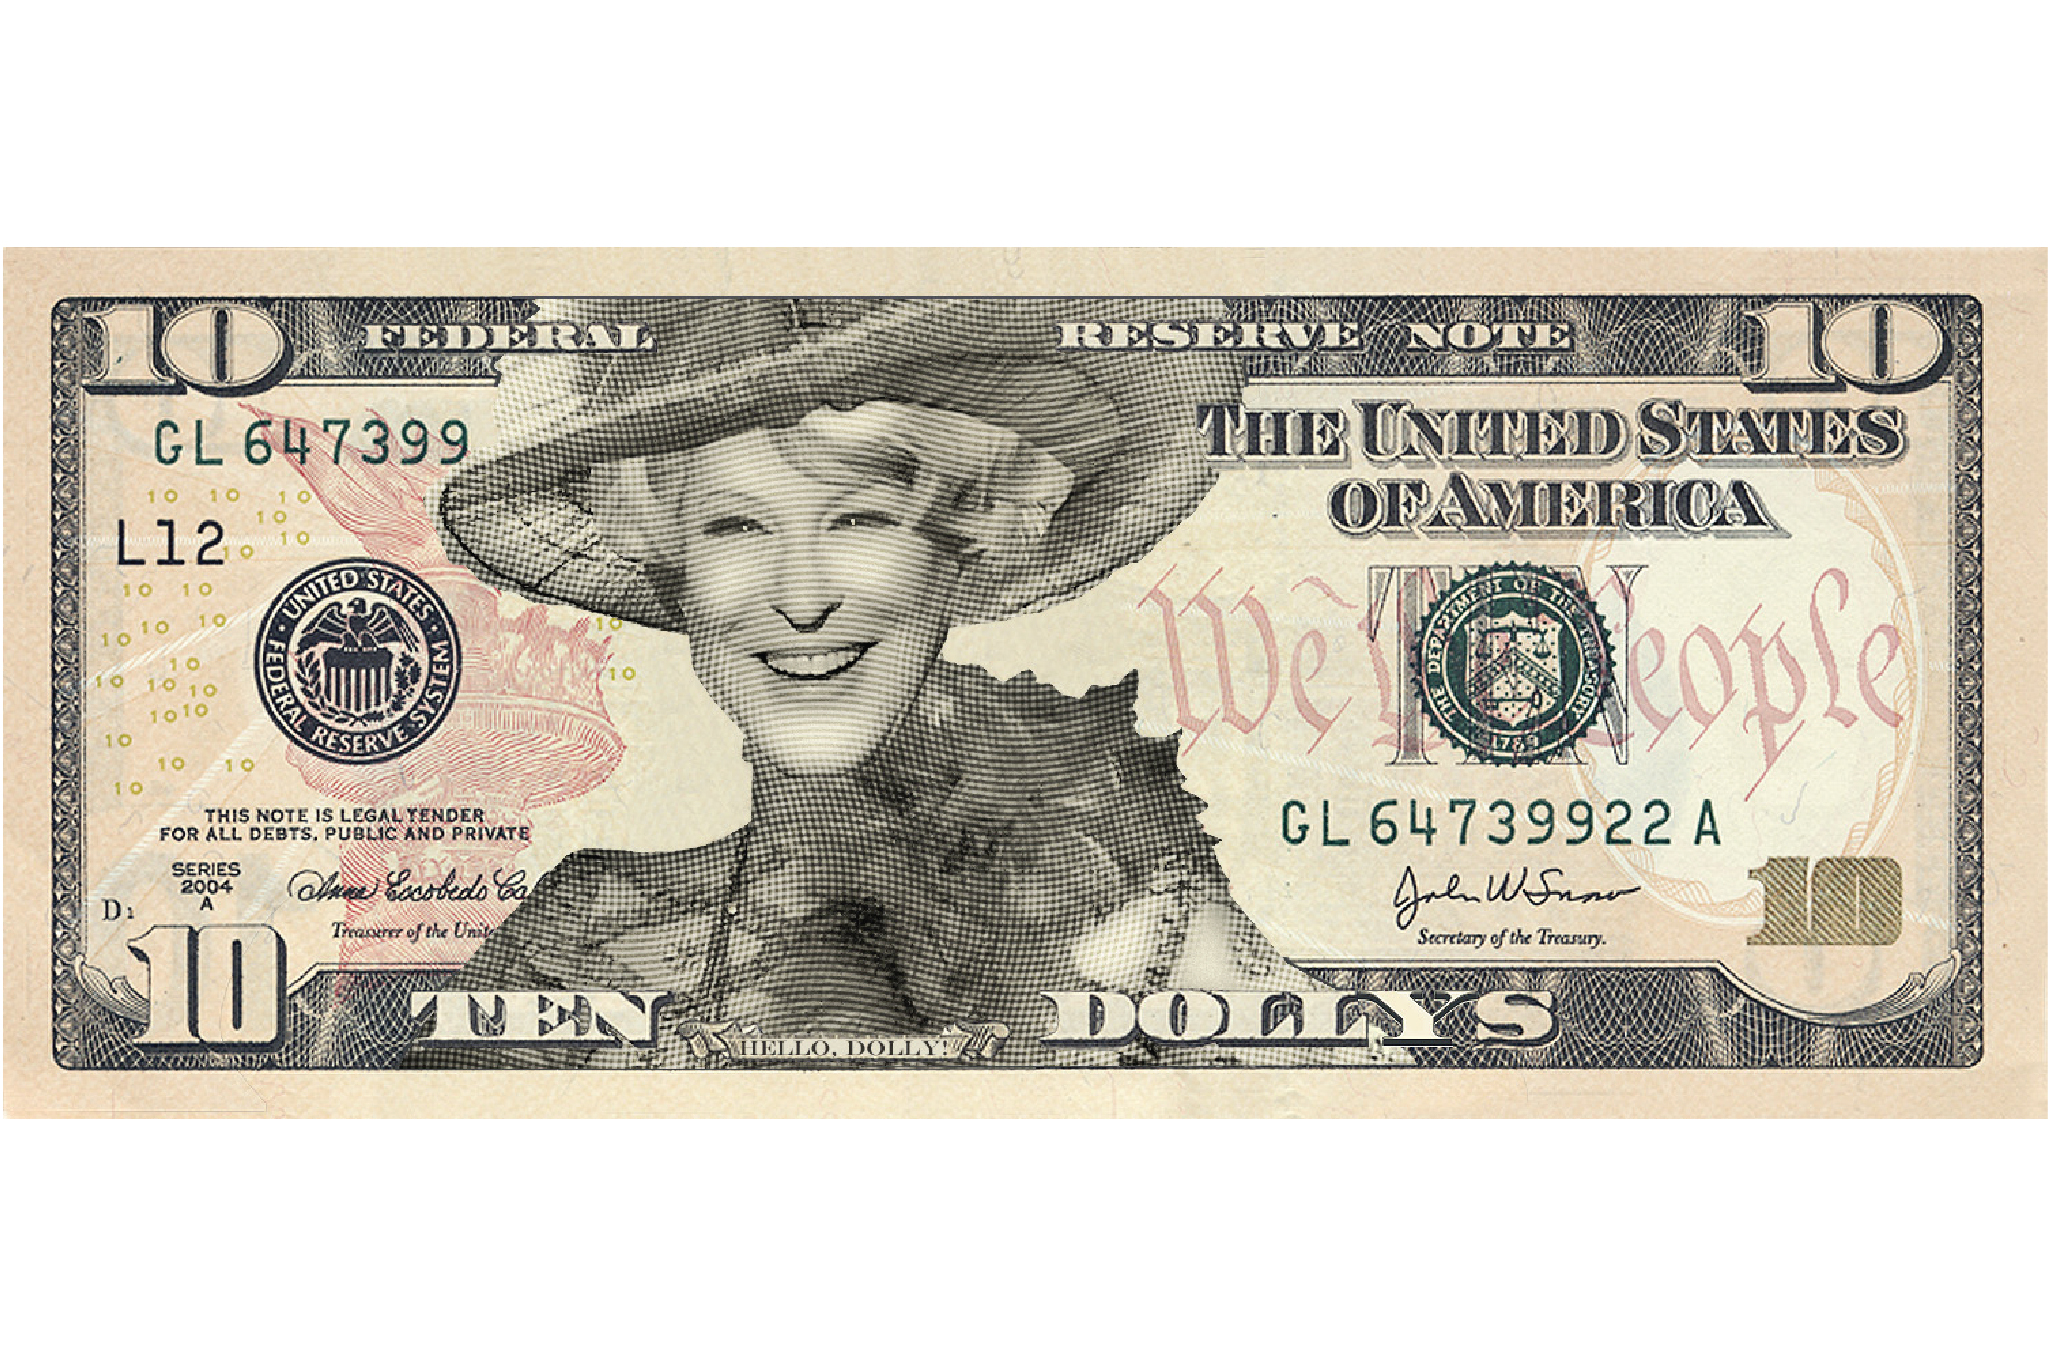 Bette Midler as Dolly Levi on the Ten.